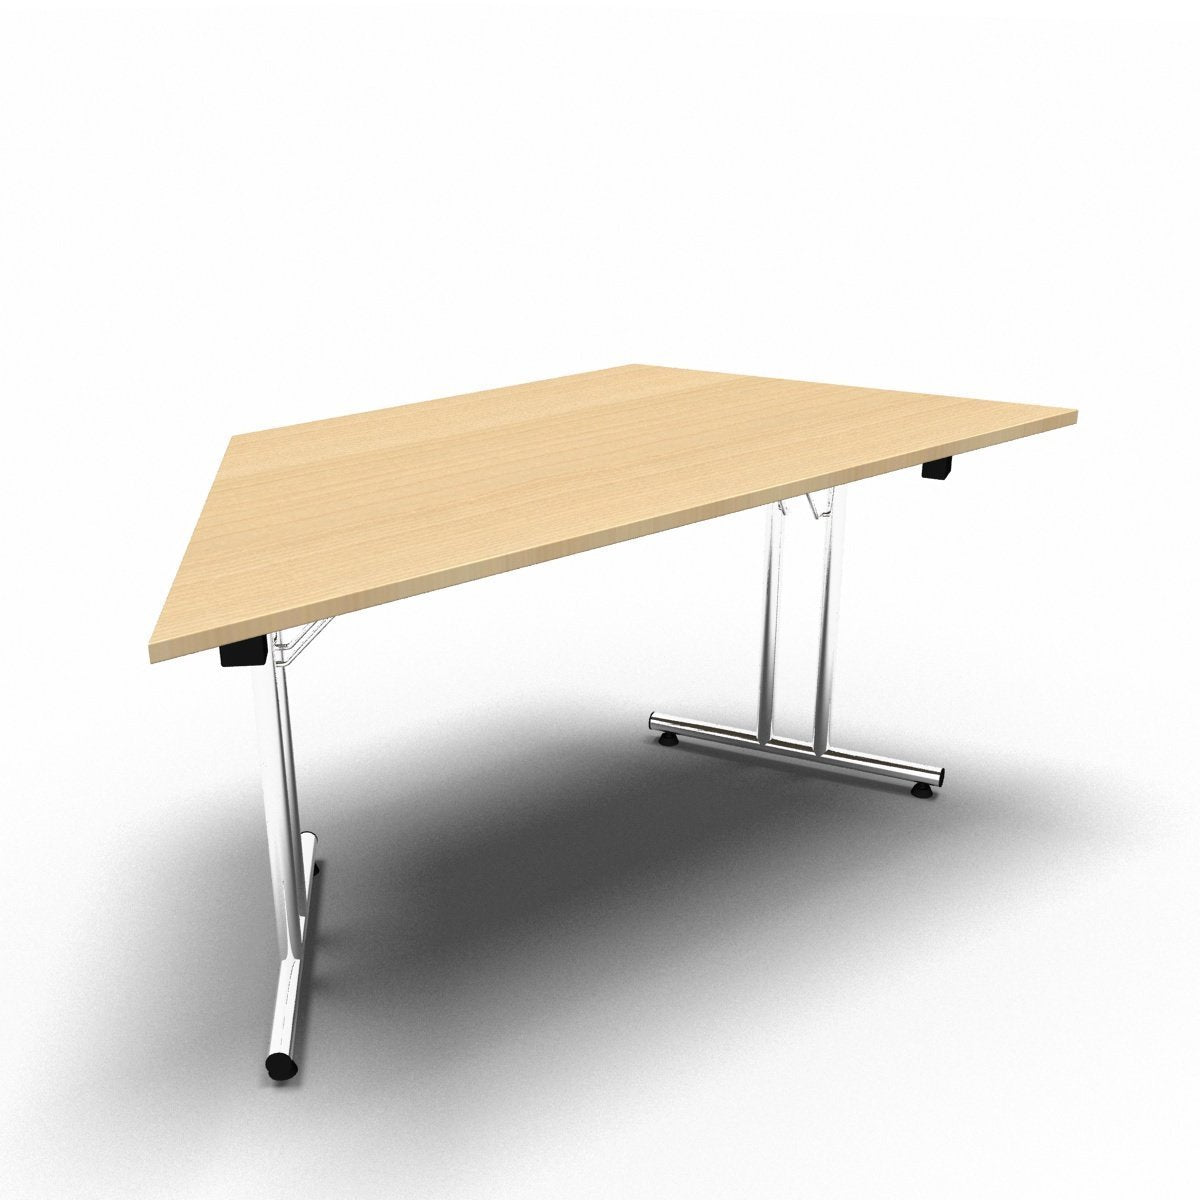 Table 1600 x 800 x 730mm / Trapezoidal / Maple Synergy Folding Tables